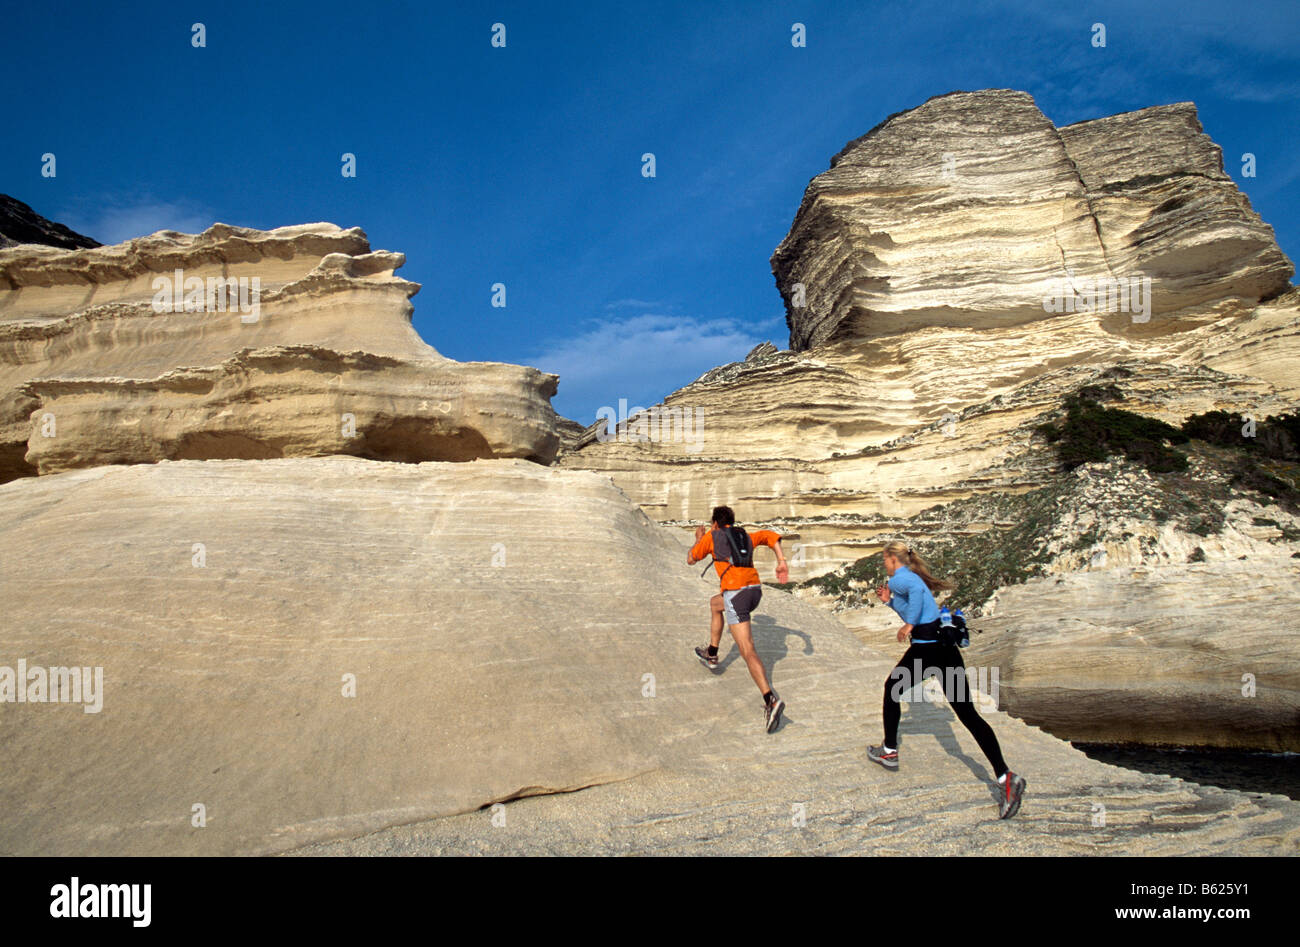 A man and woman participating in Running, Crossrunning, steep coast, Santa Manza, Bonifacio, Corsica, France, Europe - Stock Image